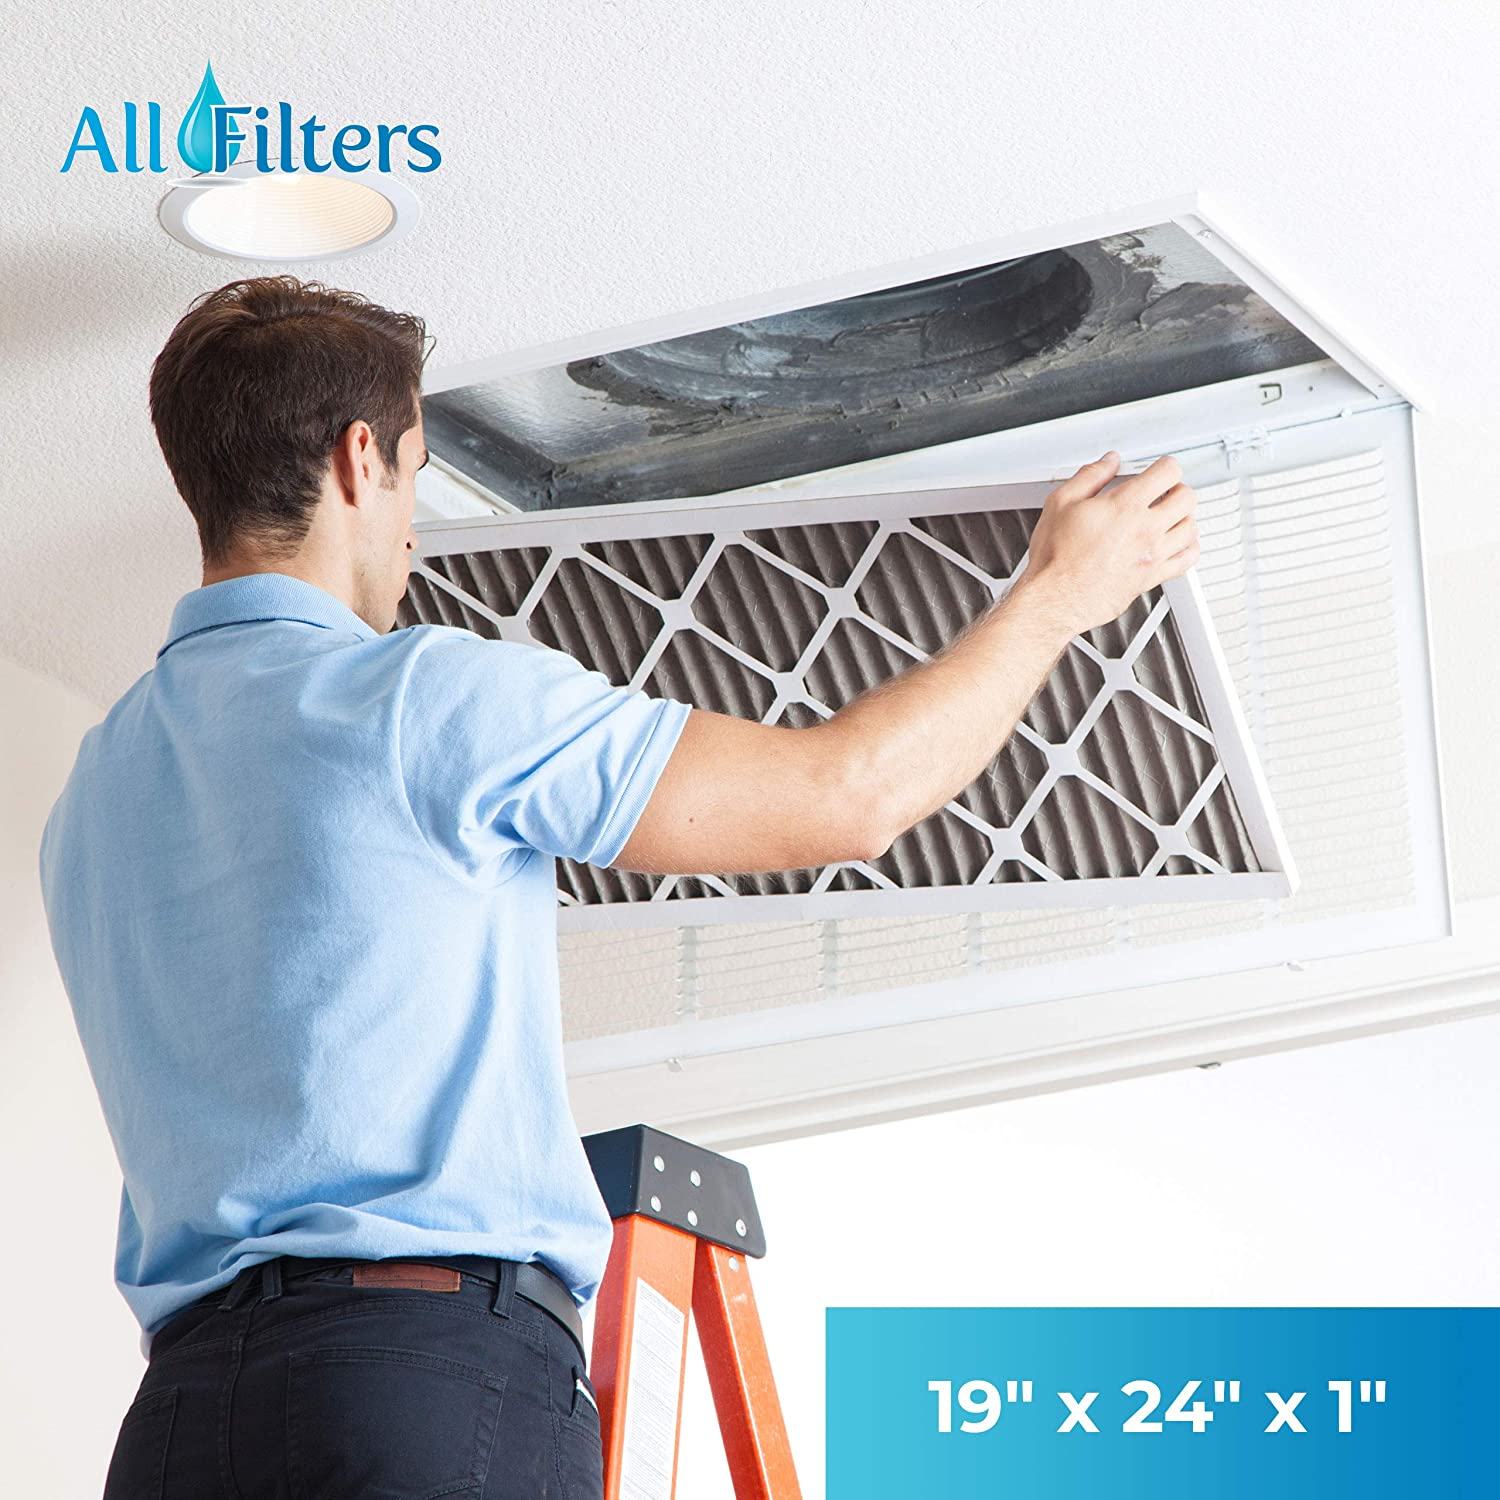 Synthetic Wire-Backed Pleated Air Filter 20 Nom Height x 24 Nom Width x 2 Nom Depth Made in USA 7 Pack